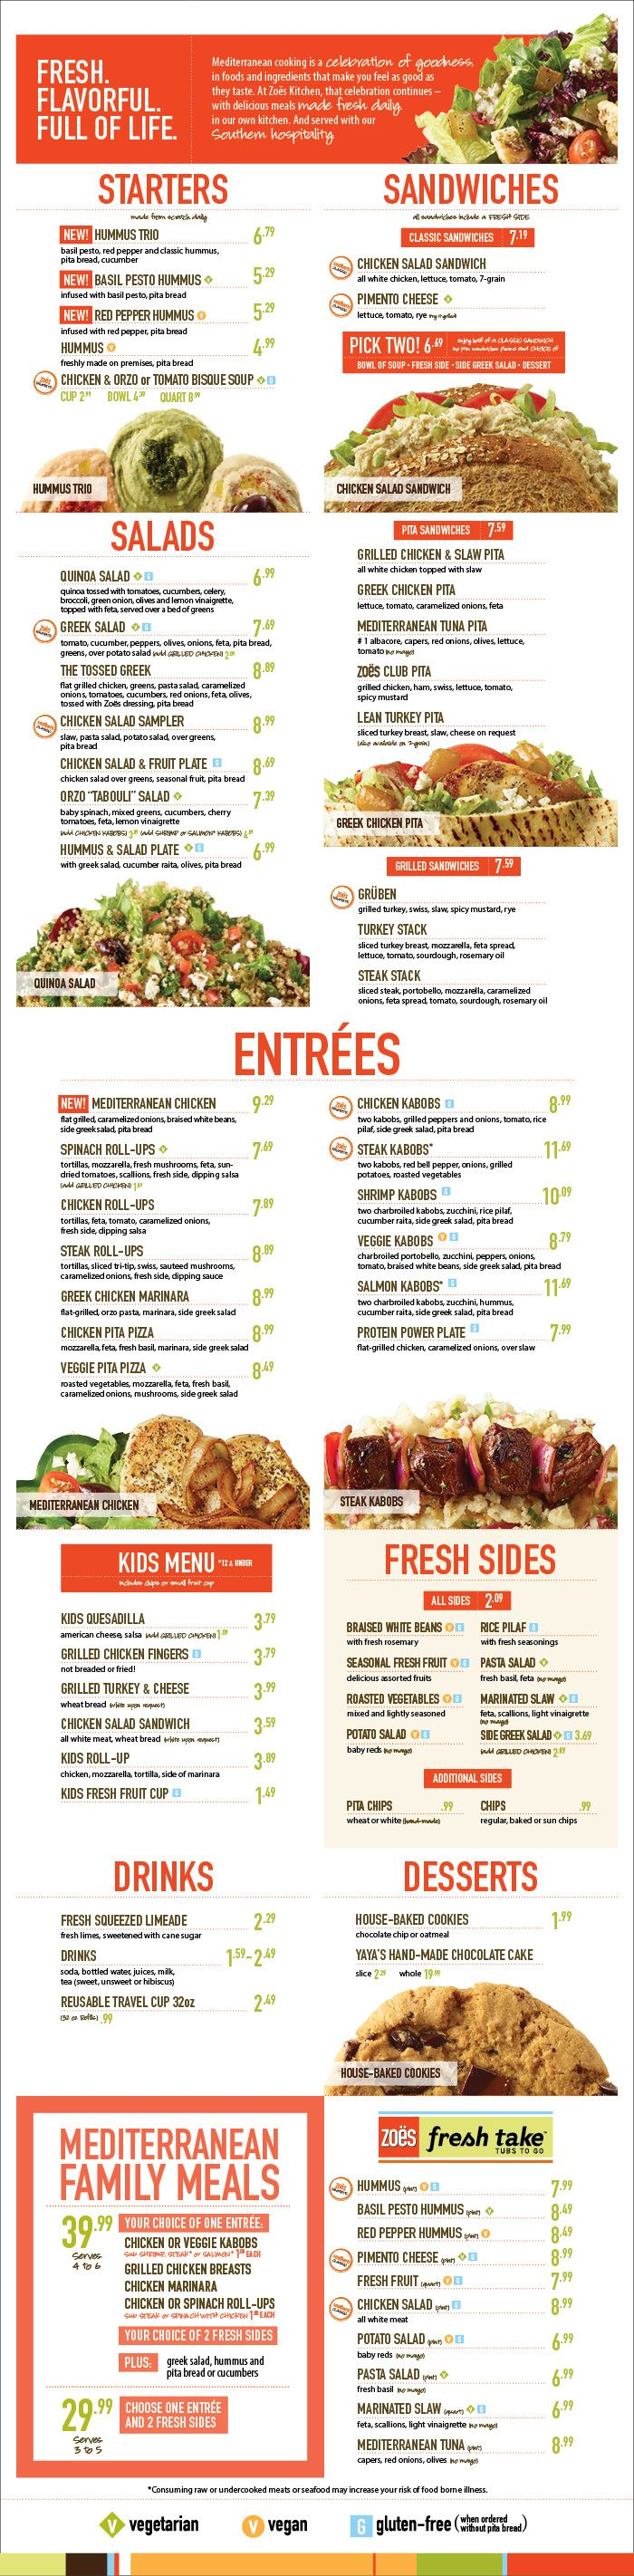 Fort worth alliance great mediterranean and healthy food for Zoes kitchen charlotte nc